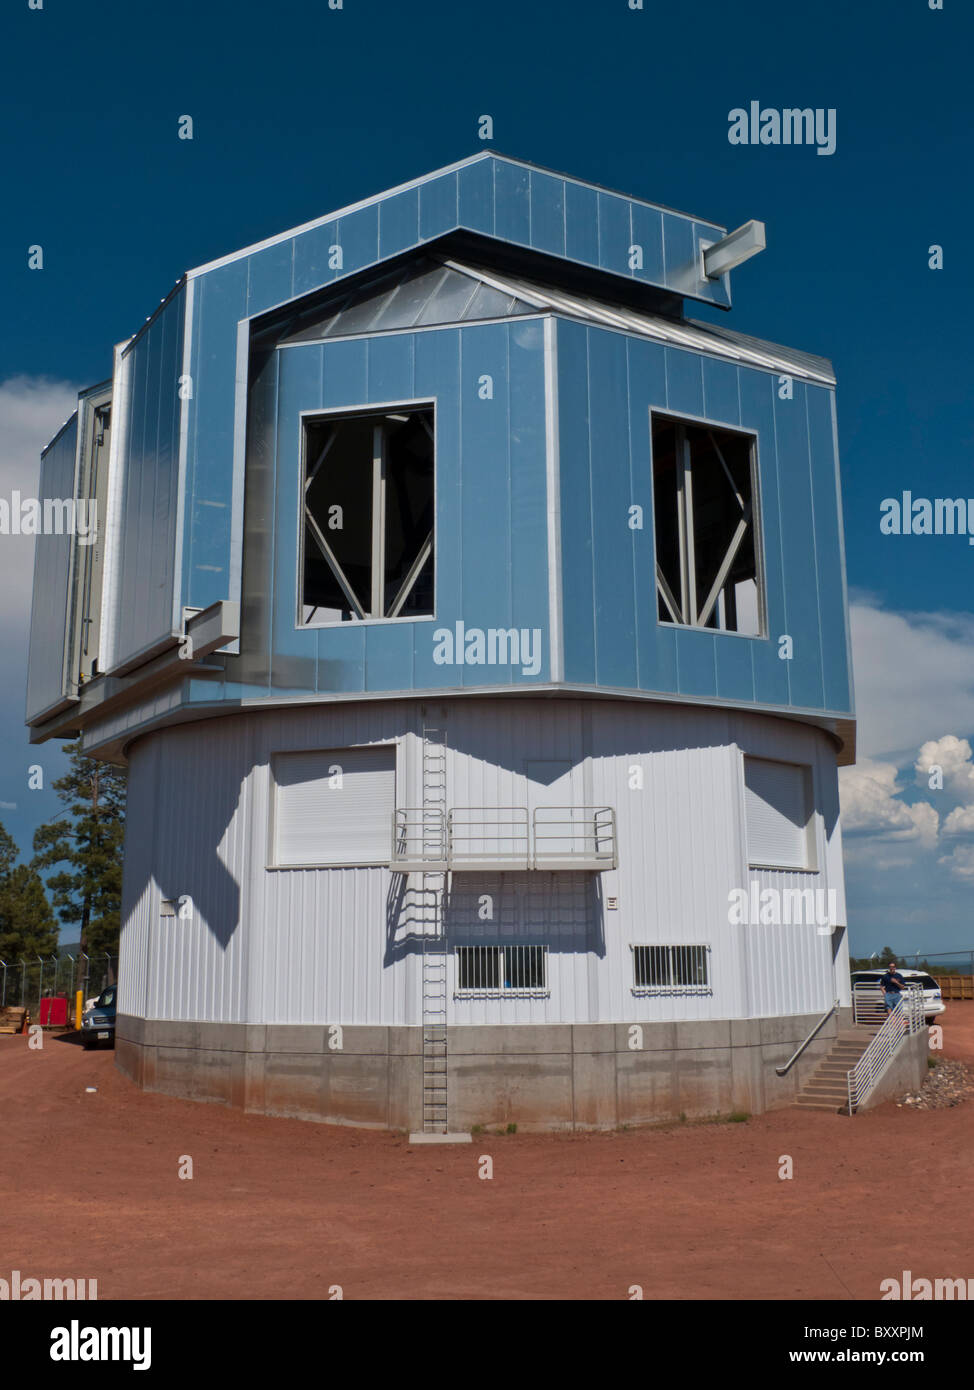 The observatory that houses the 4.2 meter Discover Channel Telescope near Flagstaff, Arizona - Stock Image